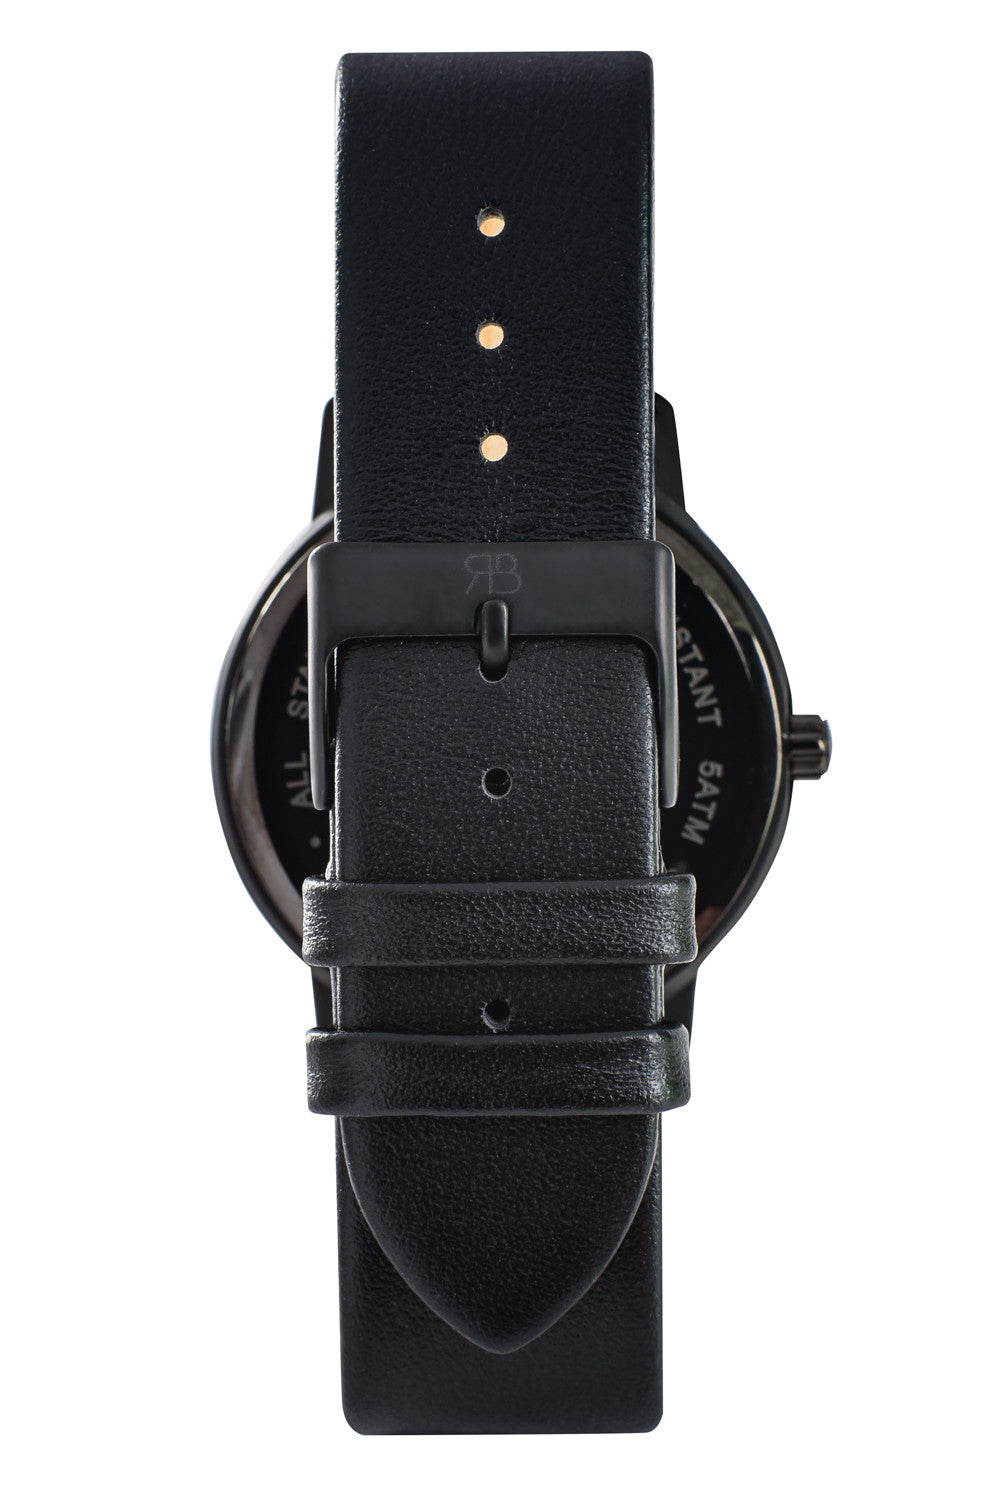 Matte black Rossbanna Cornice watch with black strap, minimal, elegant, timeless, unique timepiece 05